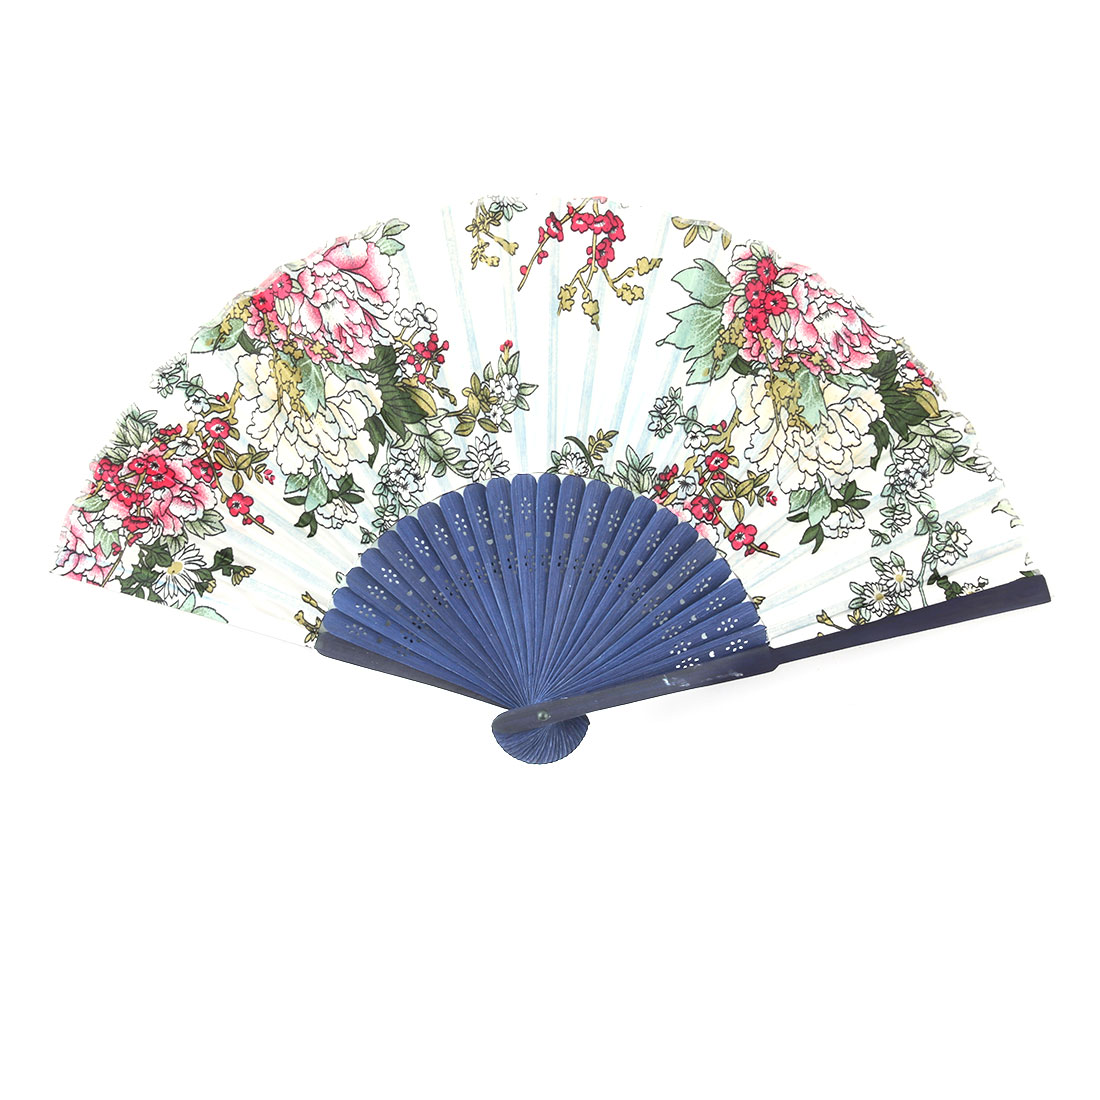 Lady Party Bamboo Frame Flower Pattern Folding Cooling Dancing Hand Fan Colorful